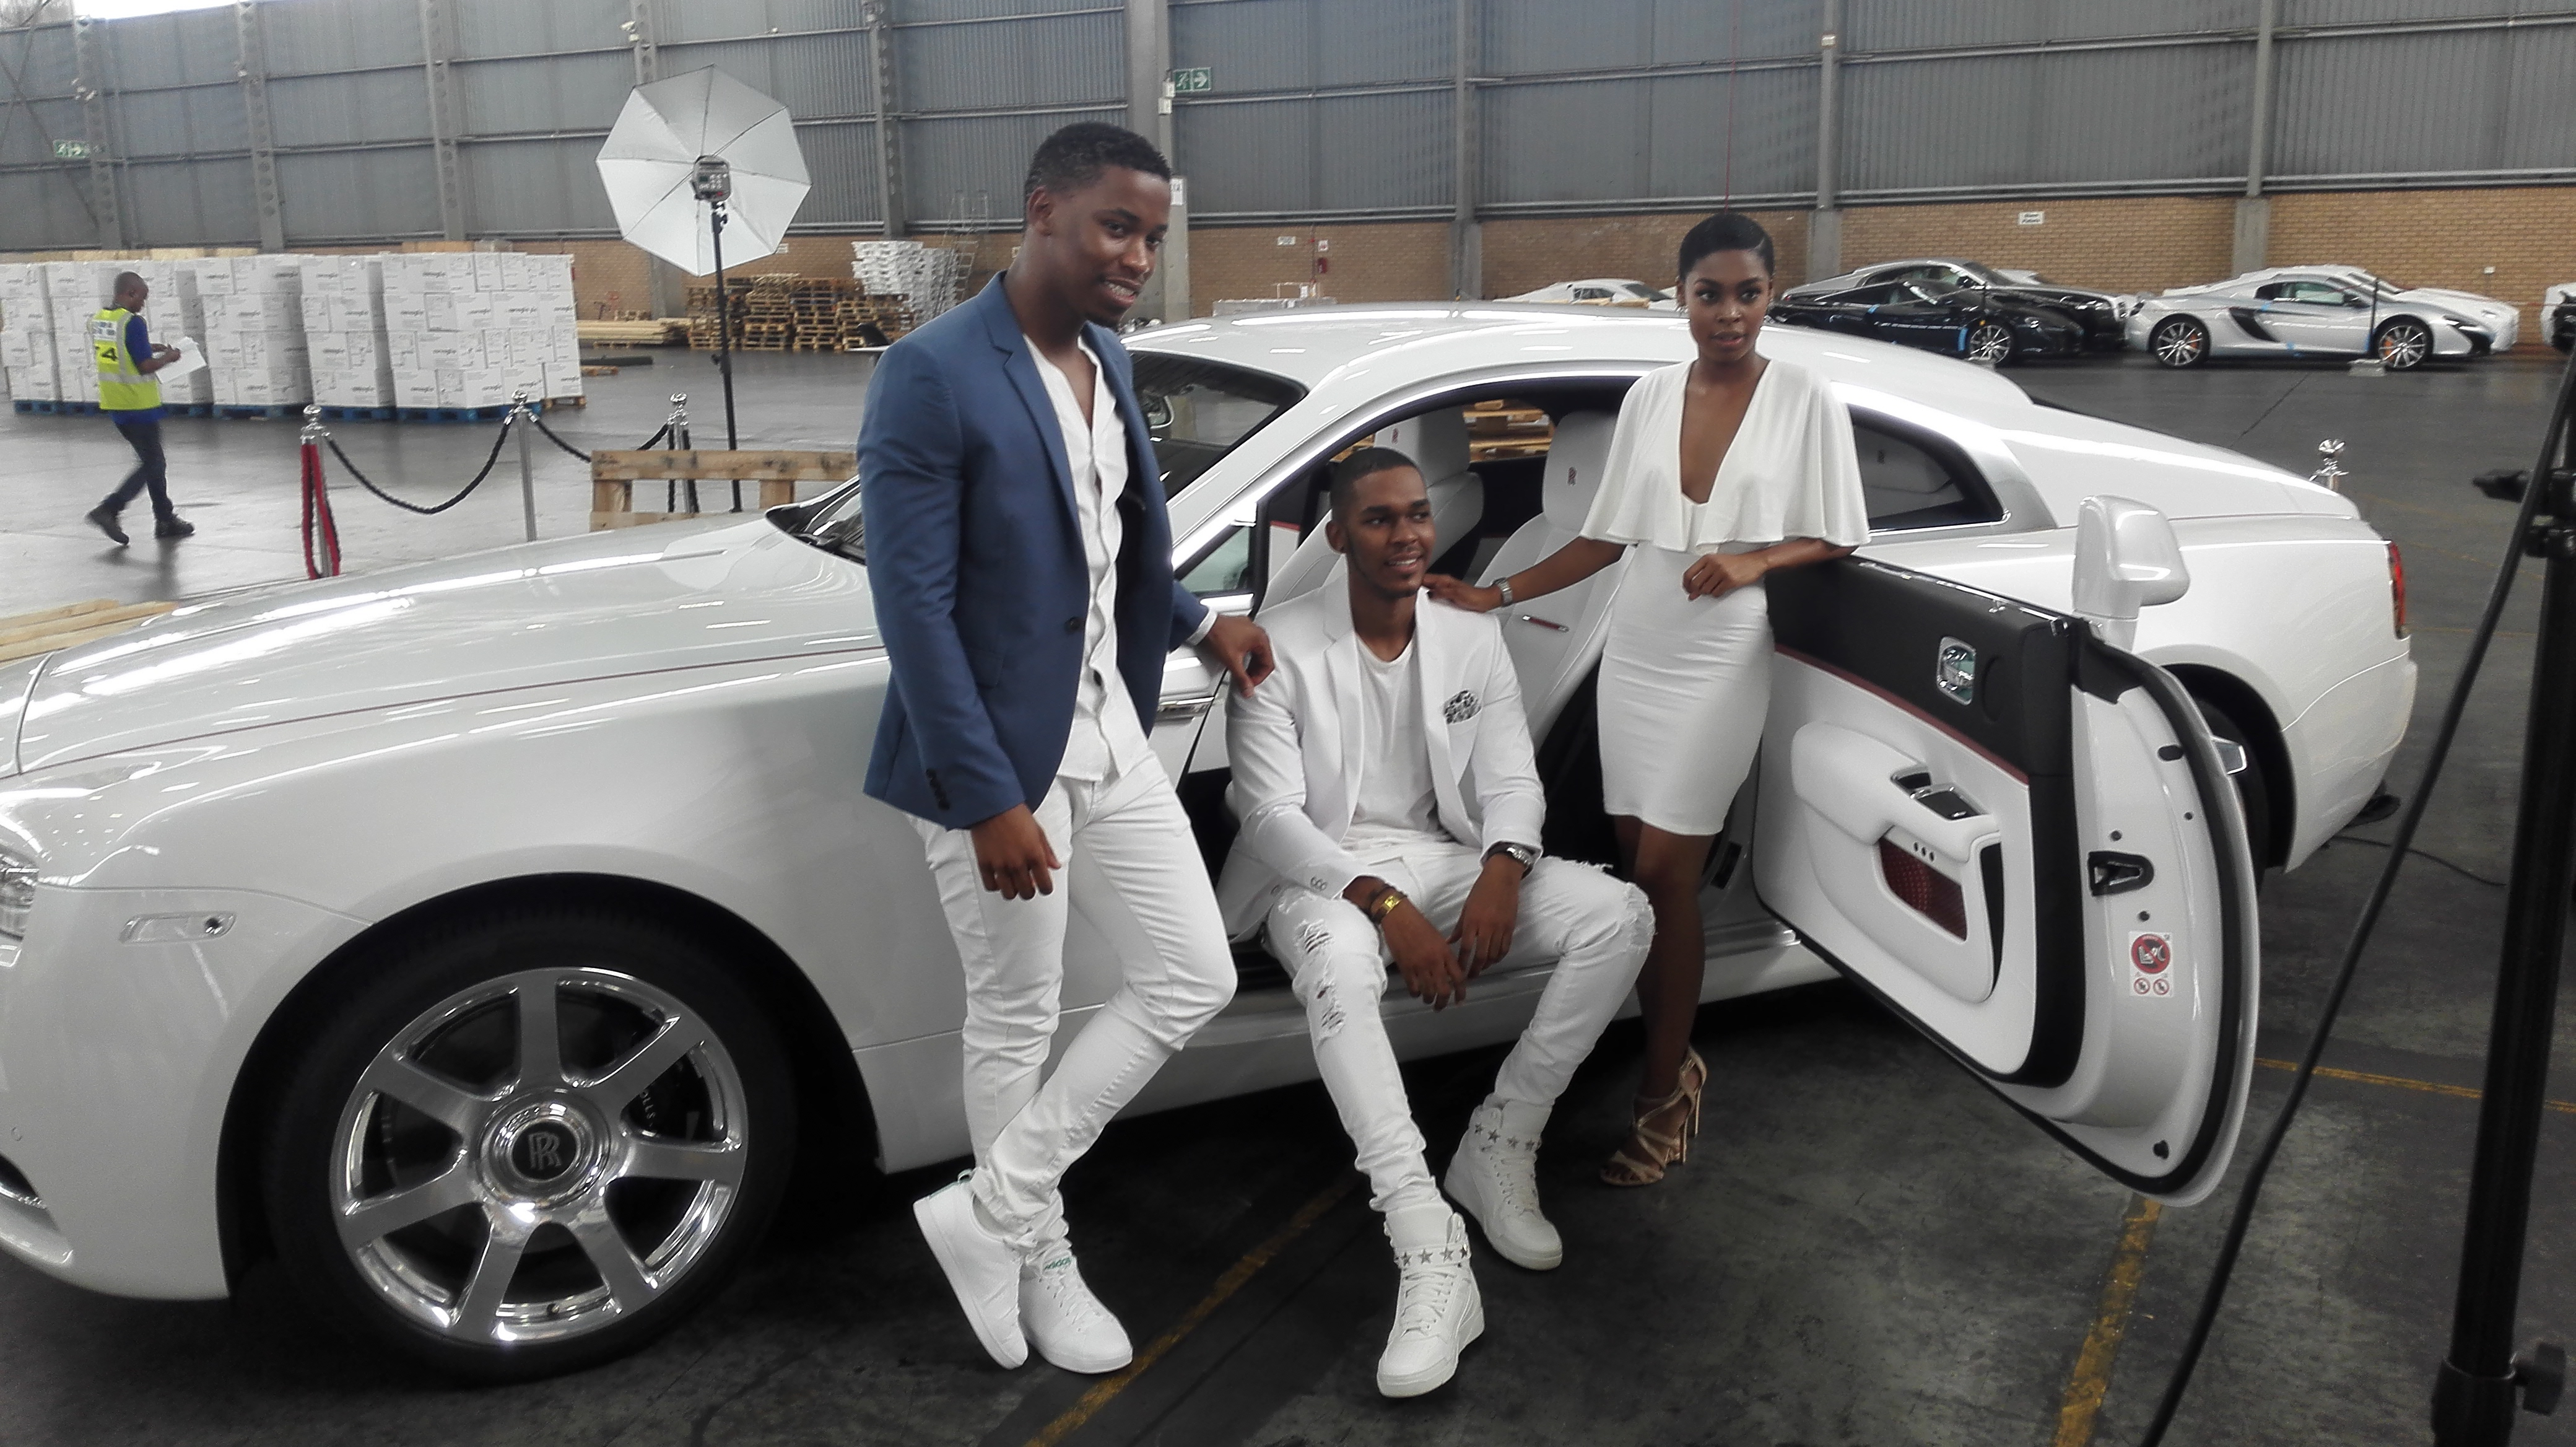 Launched: Rolls Royce Wraith Inspired by Fashion